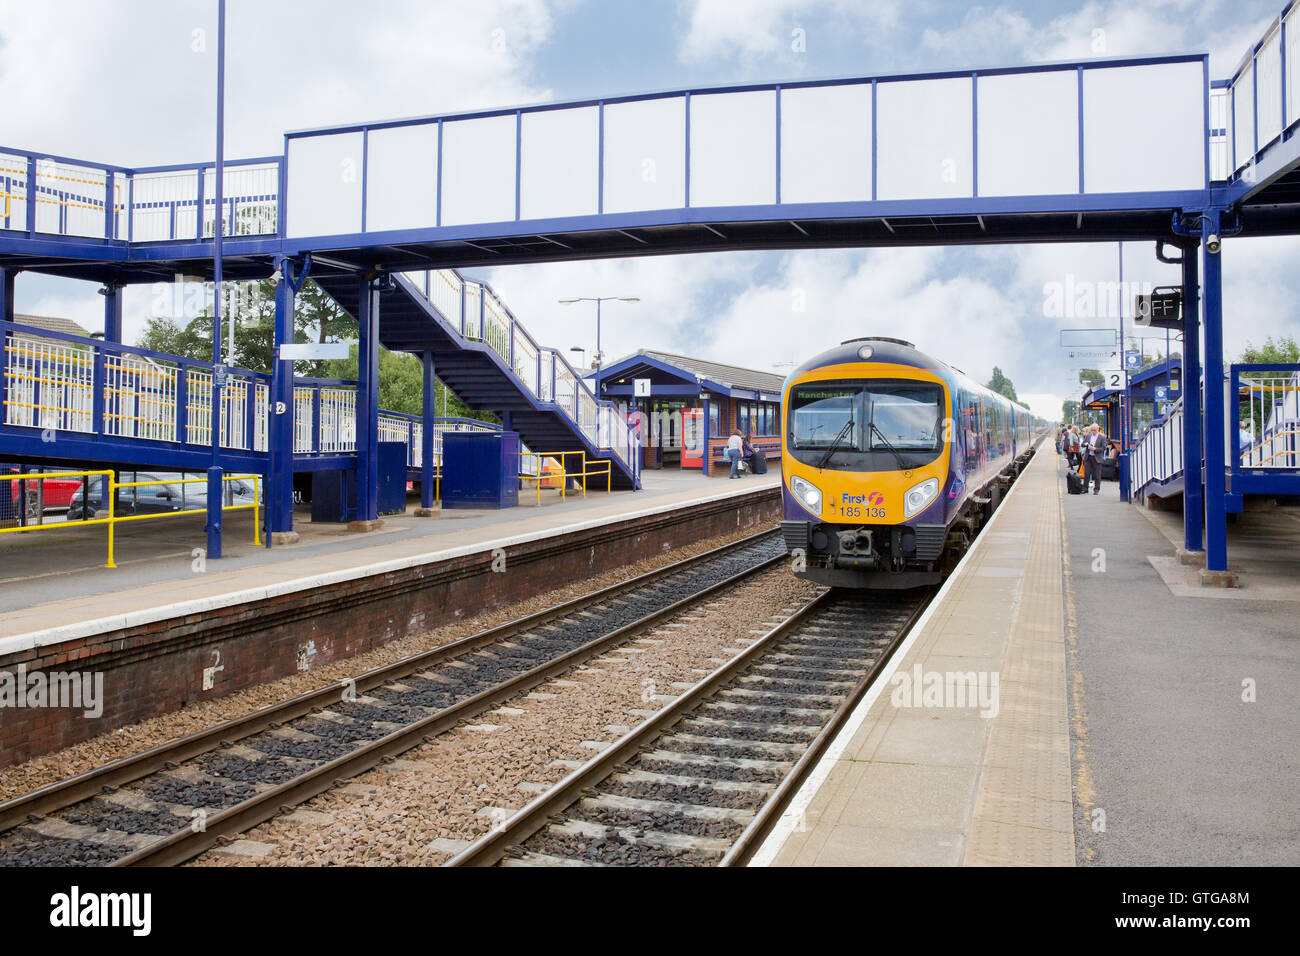 Train station brough easy torkshire 125 hull trains - Stock Image